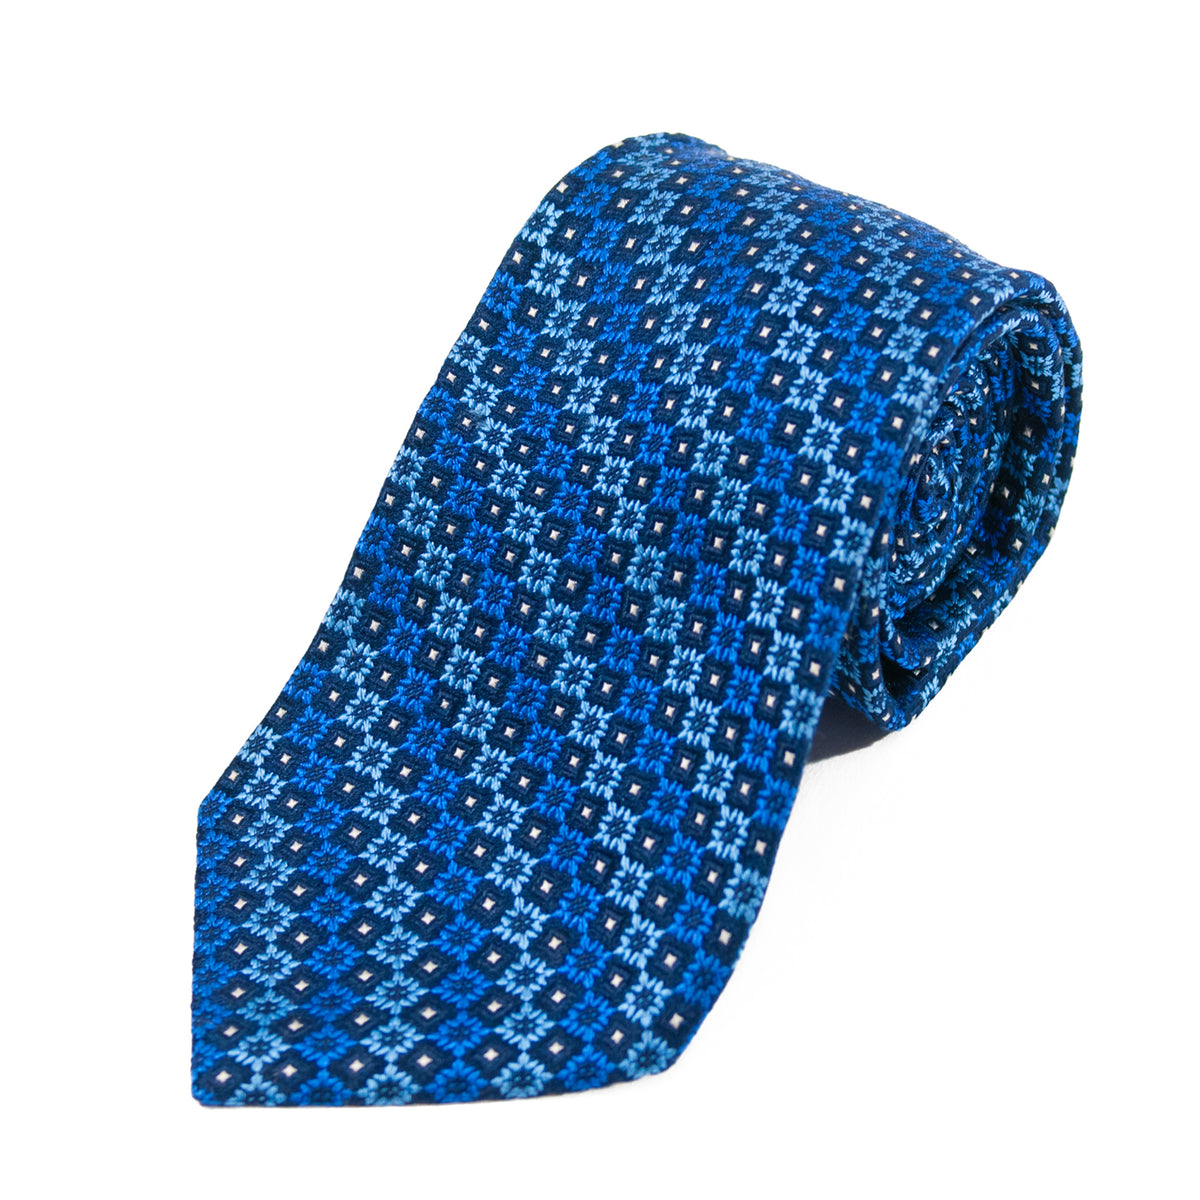 Harry Rosen Blue Geometric Patterned Silk Tie